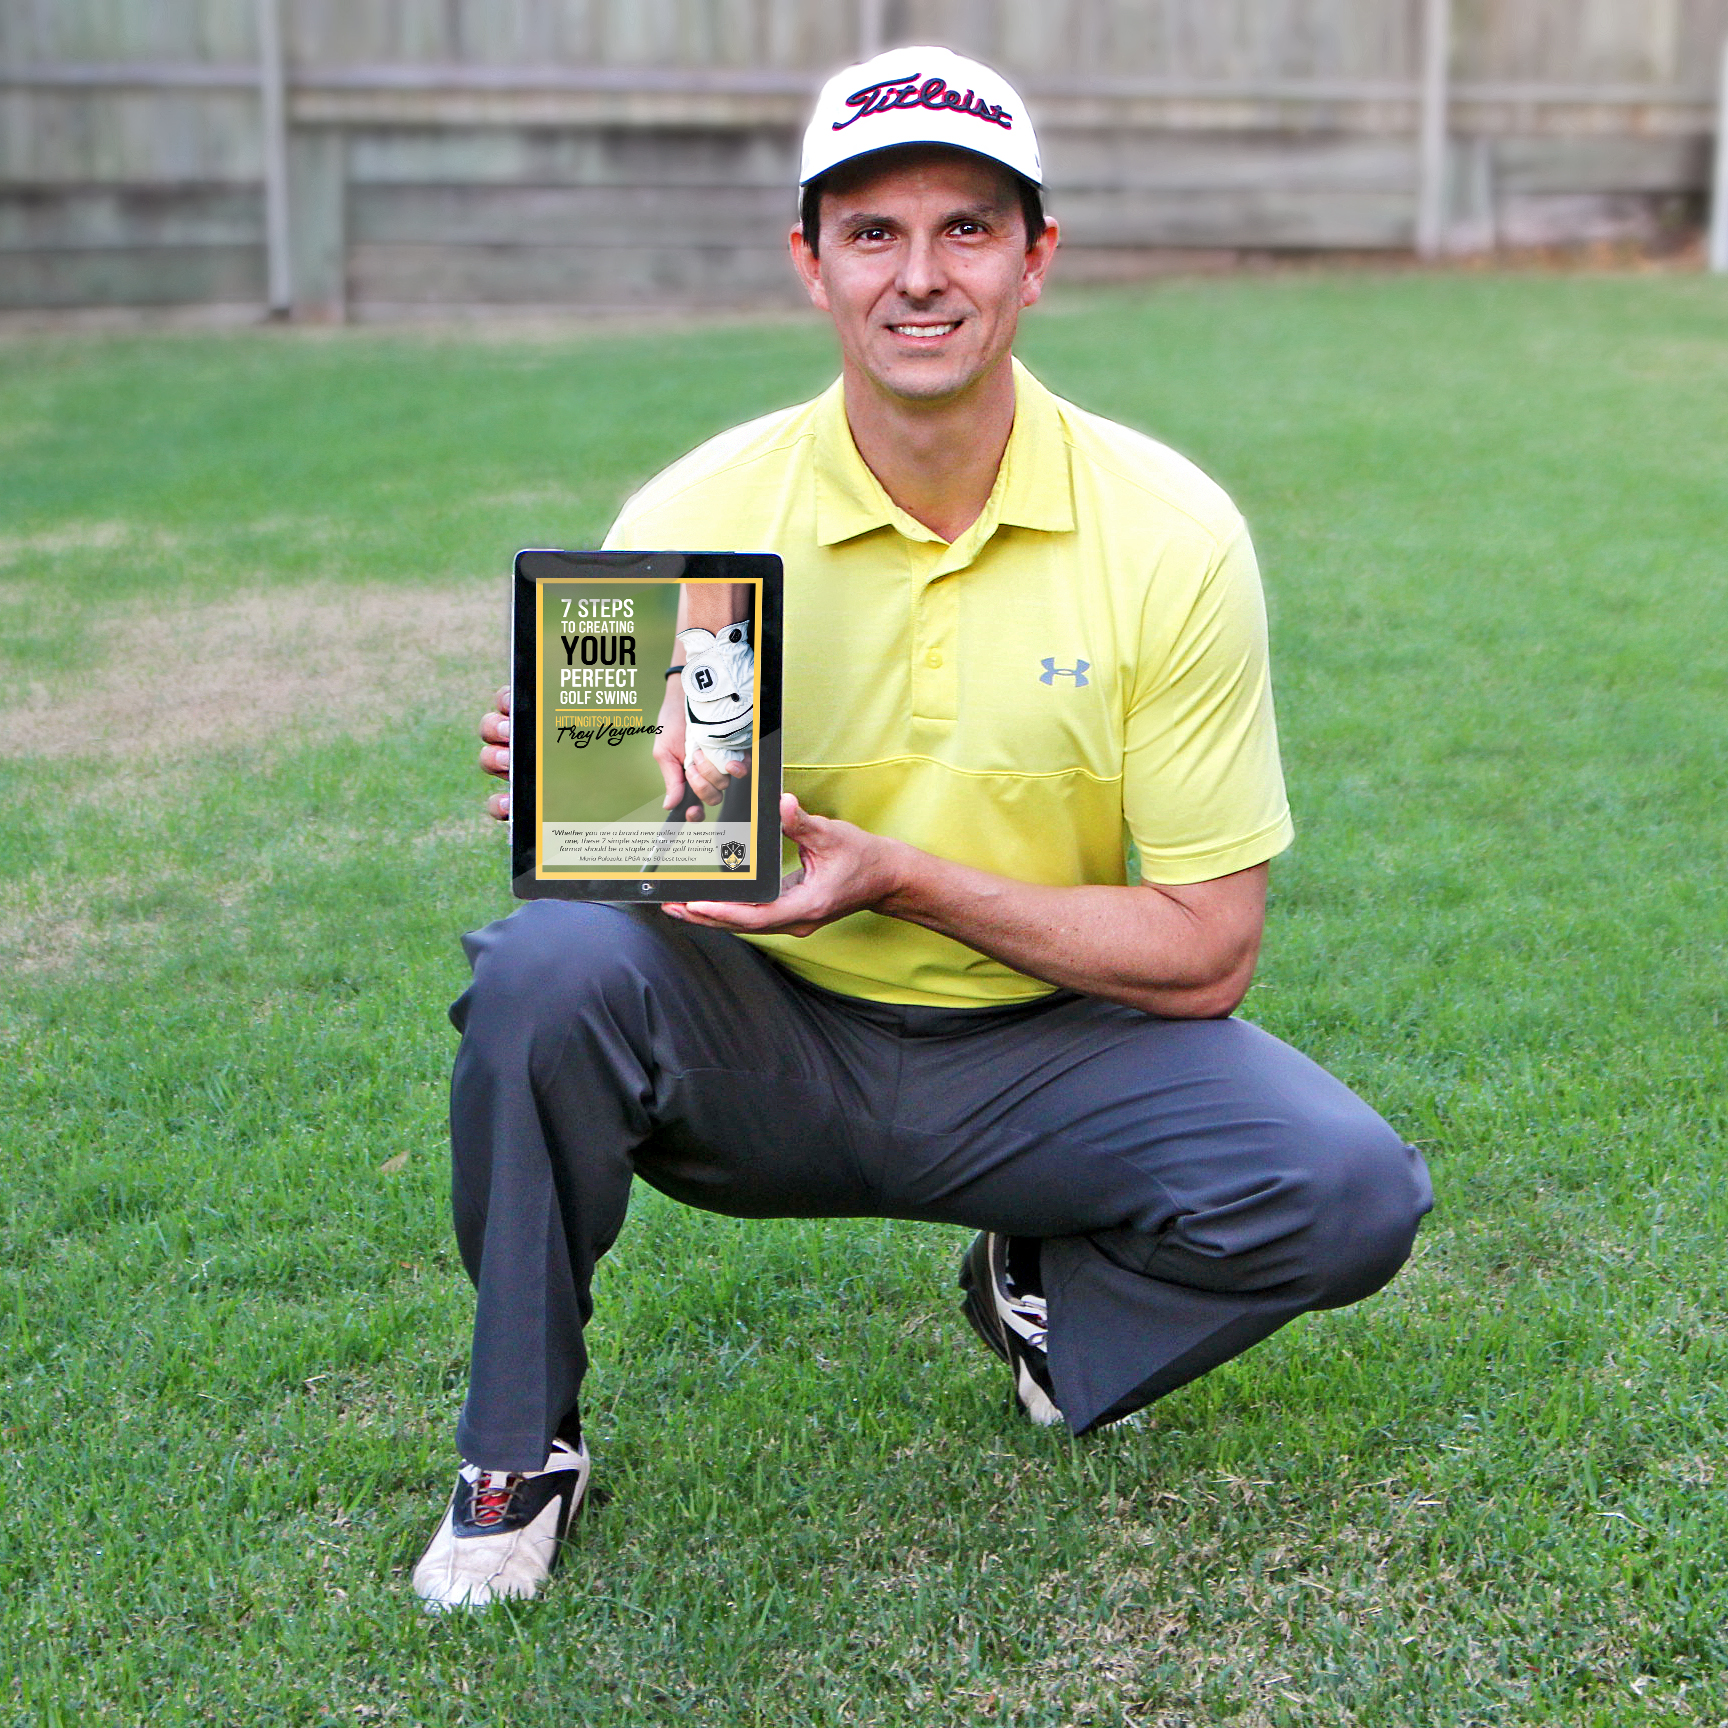 Troy Vayanos can help you play better golf, lower your scores and enjoy the game of golf more